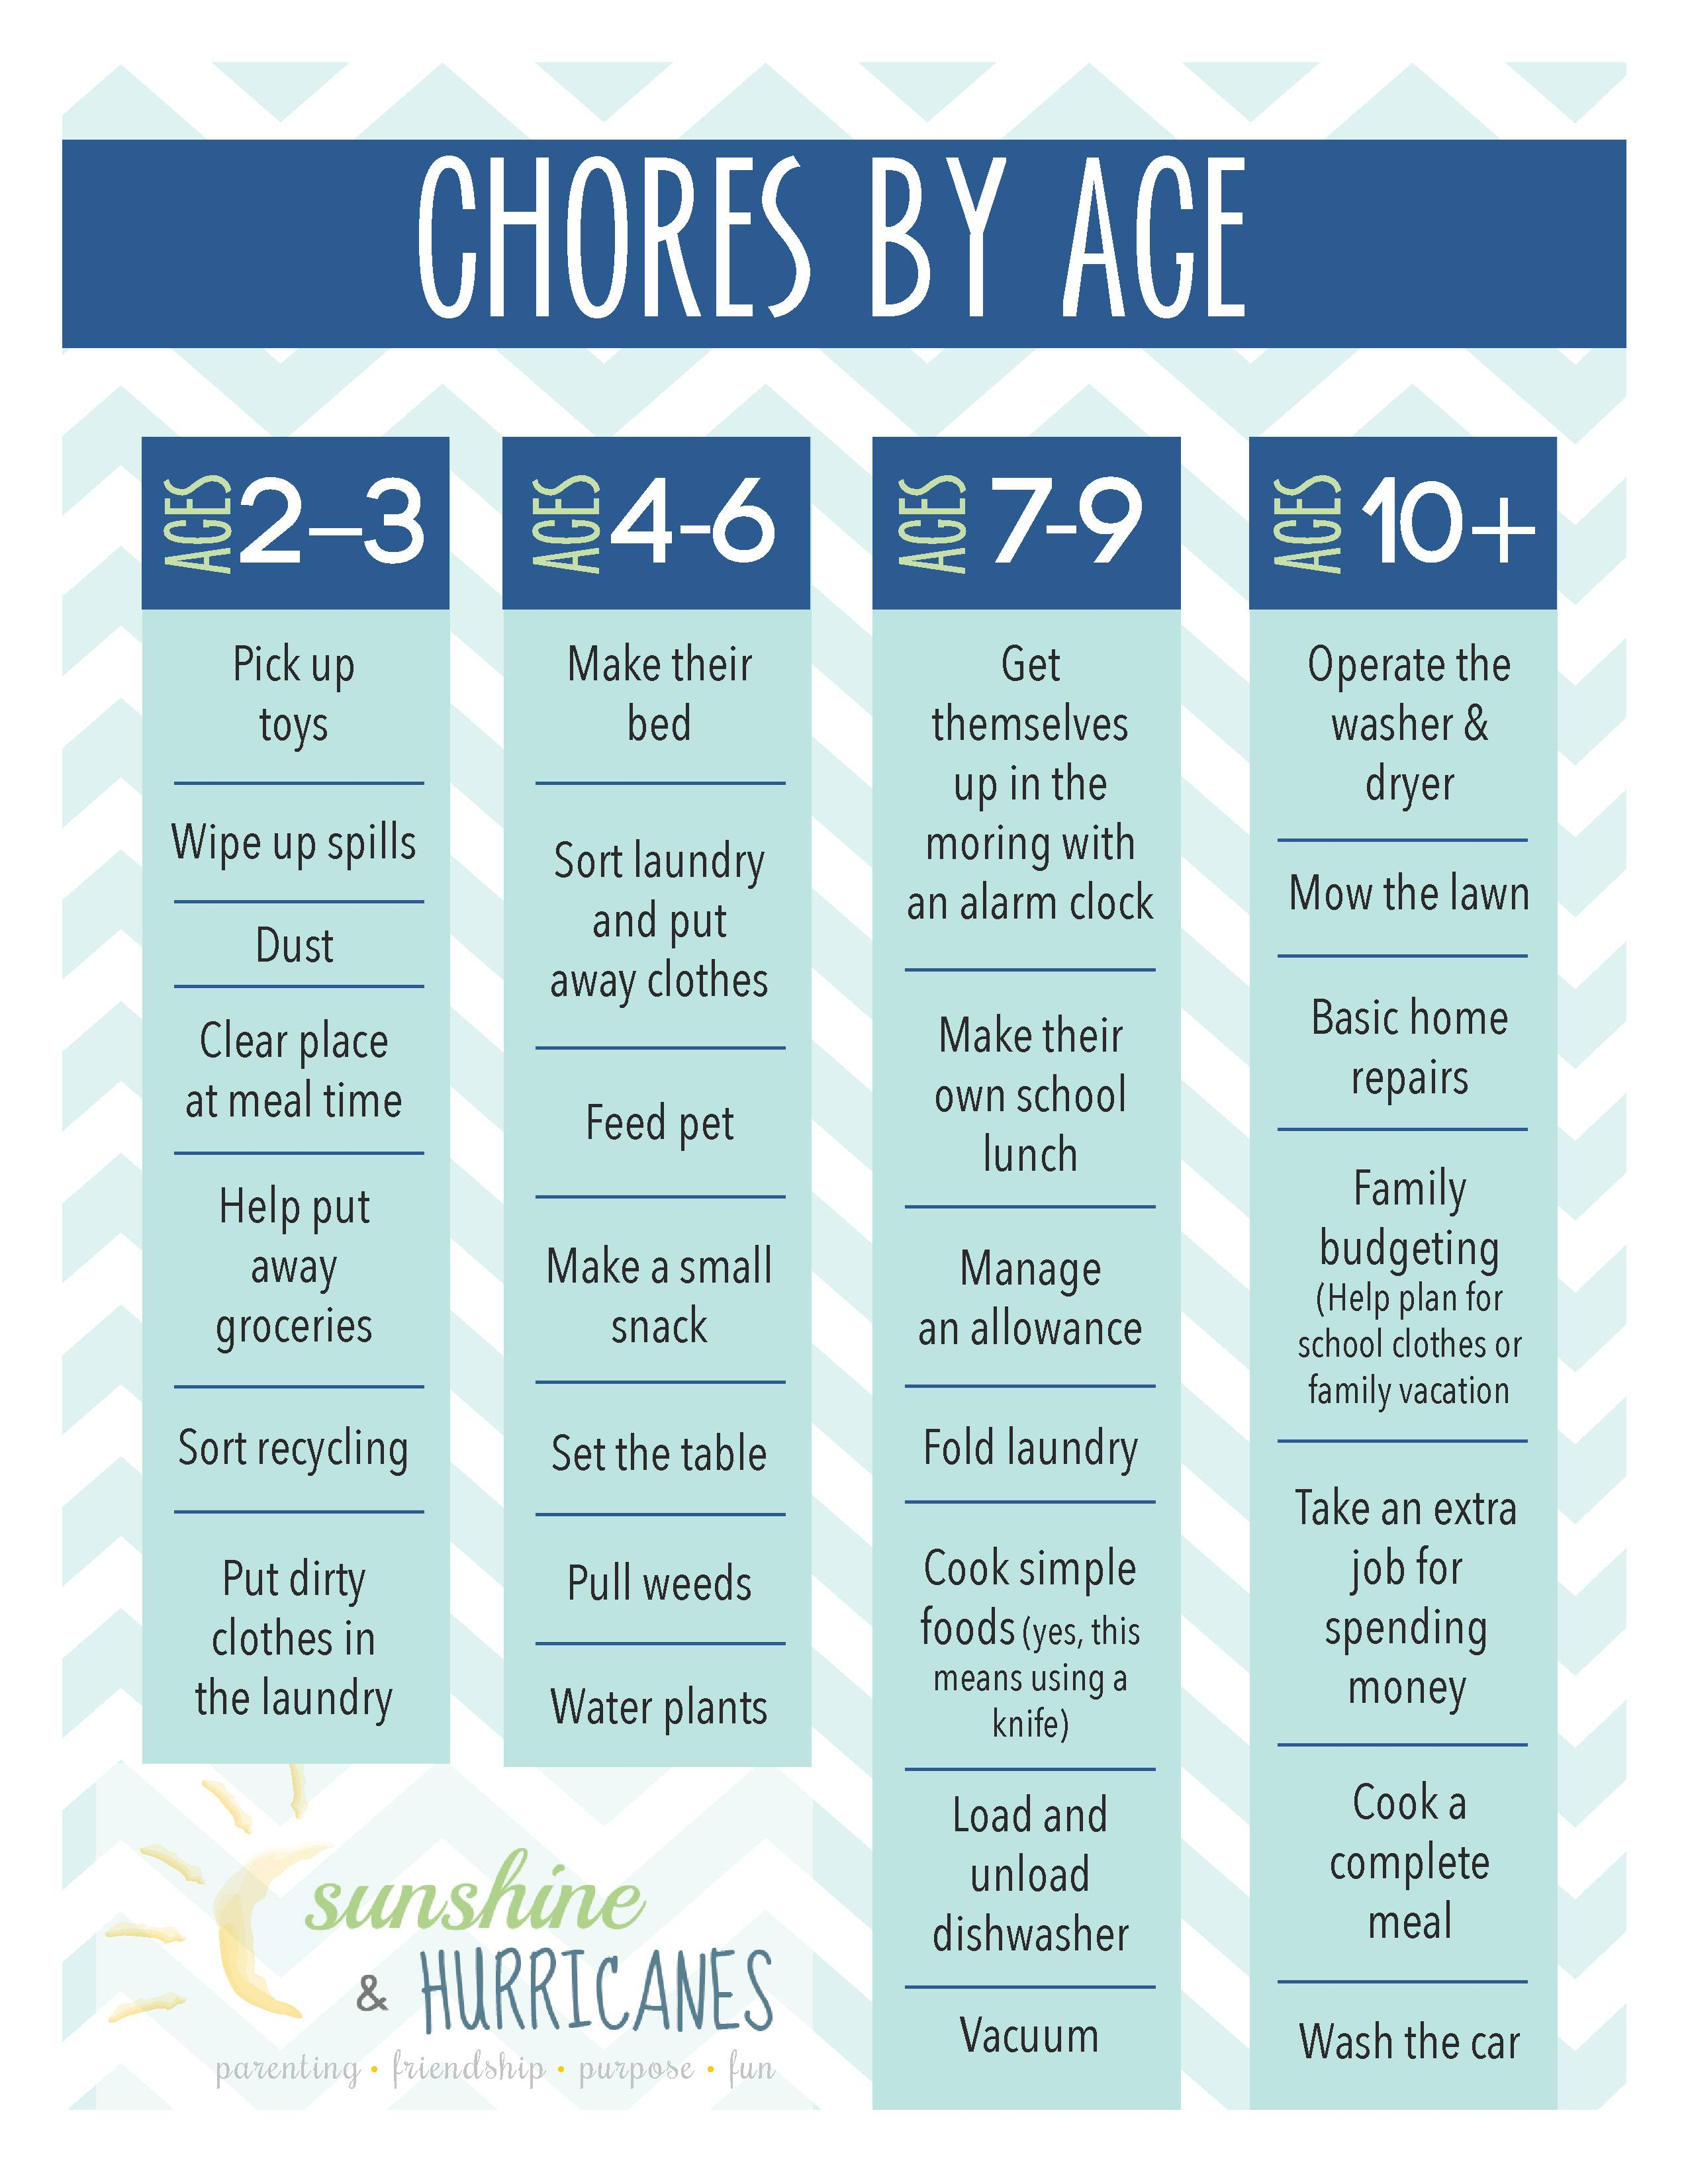 Chores for Children. A printable chore chart by age. SunshineandHurricanes.com